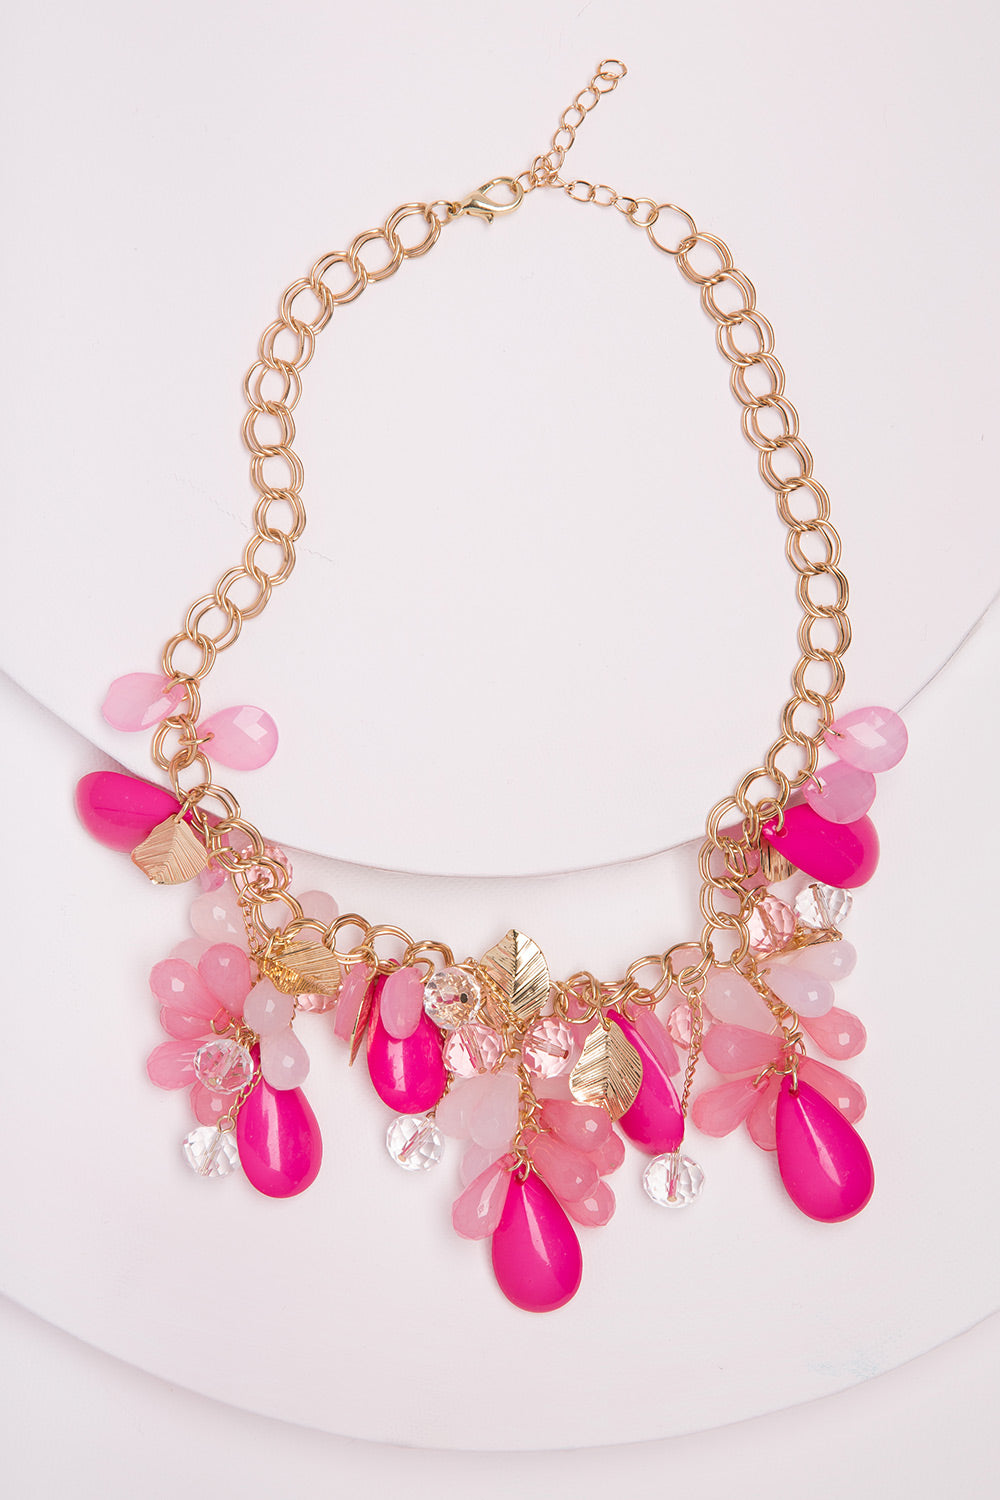 Type 1 Pinky Winky Necklace